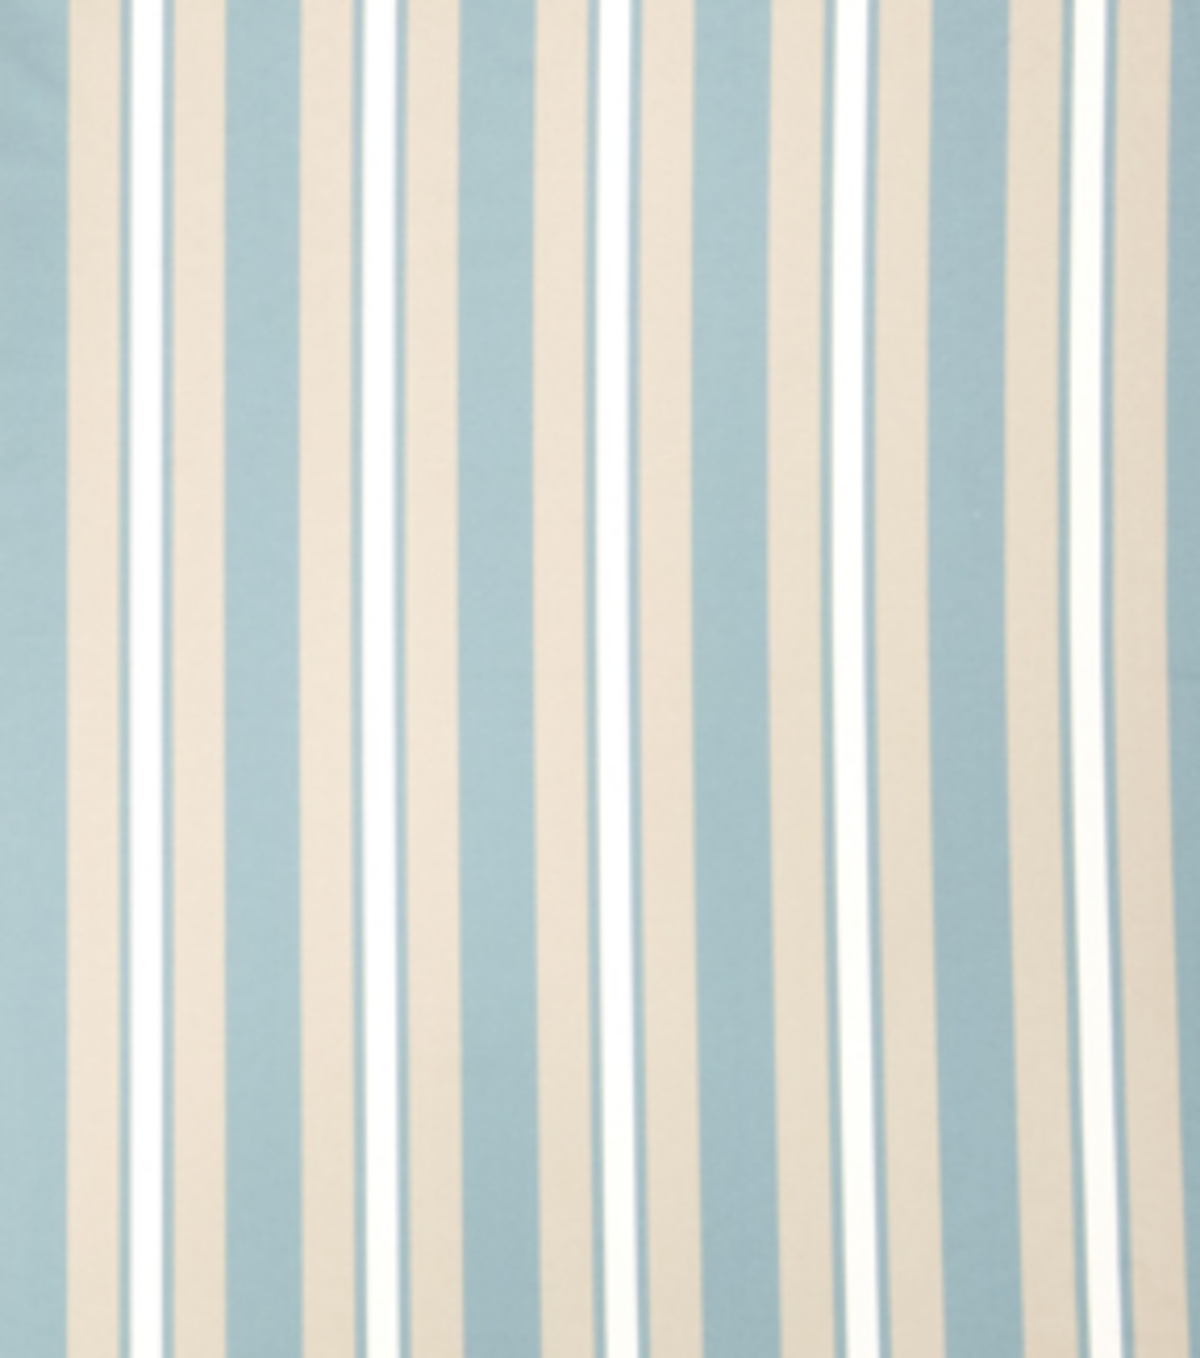 Home Decor 8\u0022x8\u0022 Fabric Swatch-Upholstery Fabric Eaton Square Roth Aegean